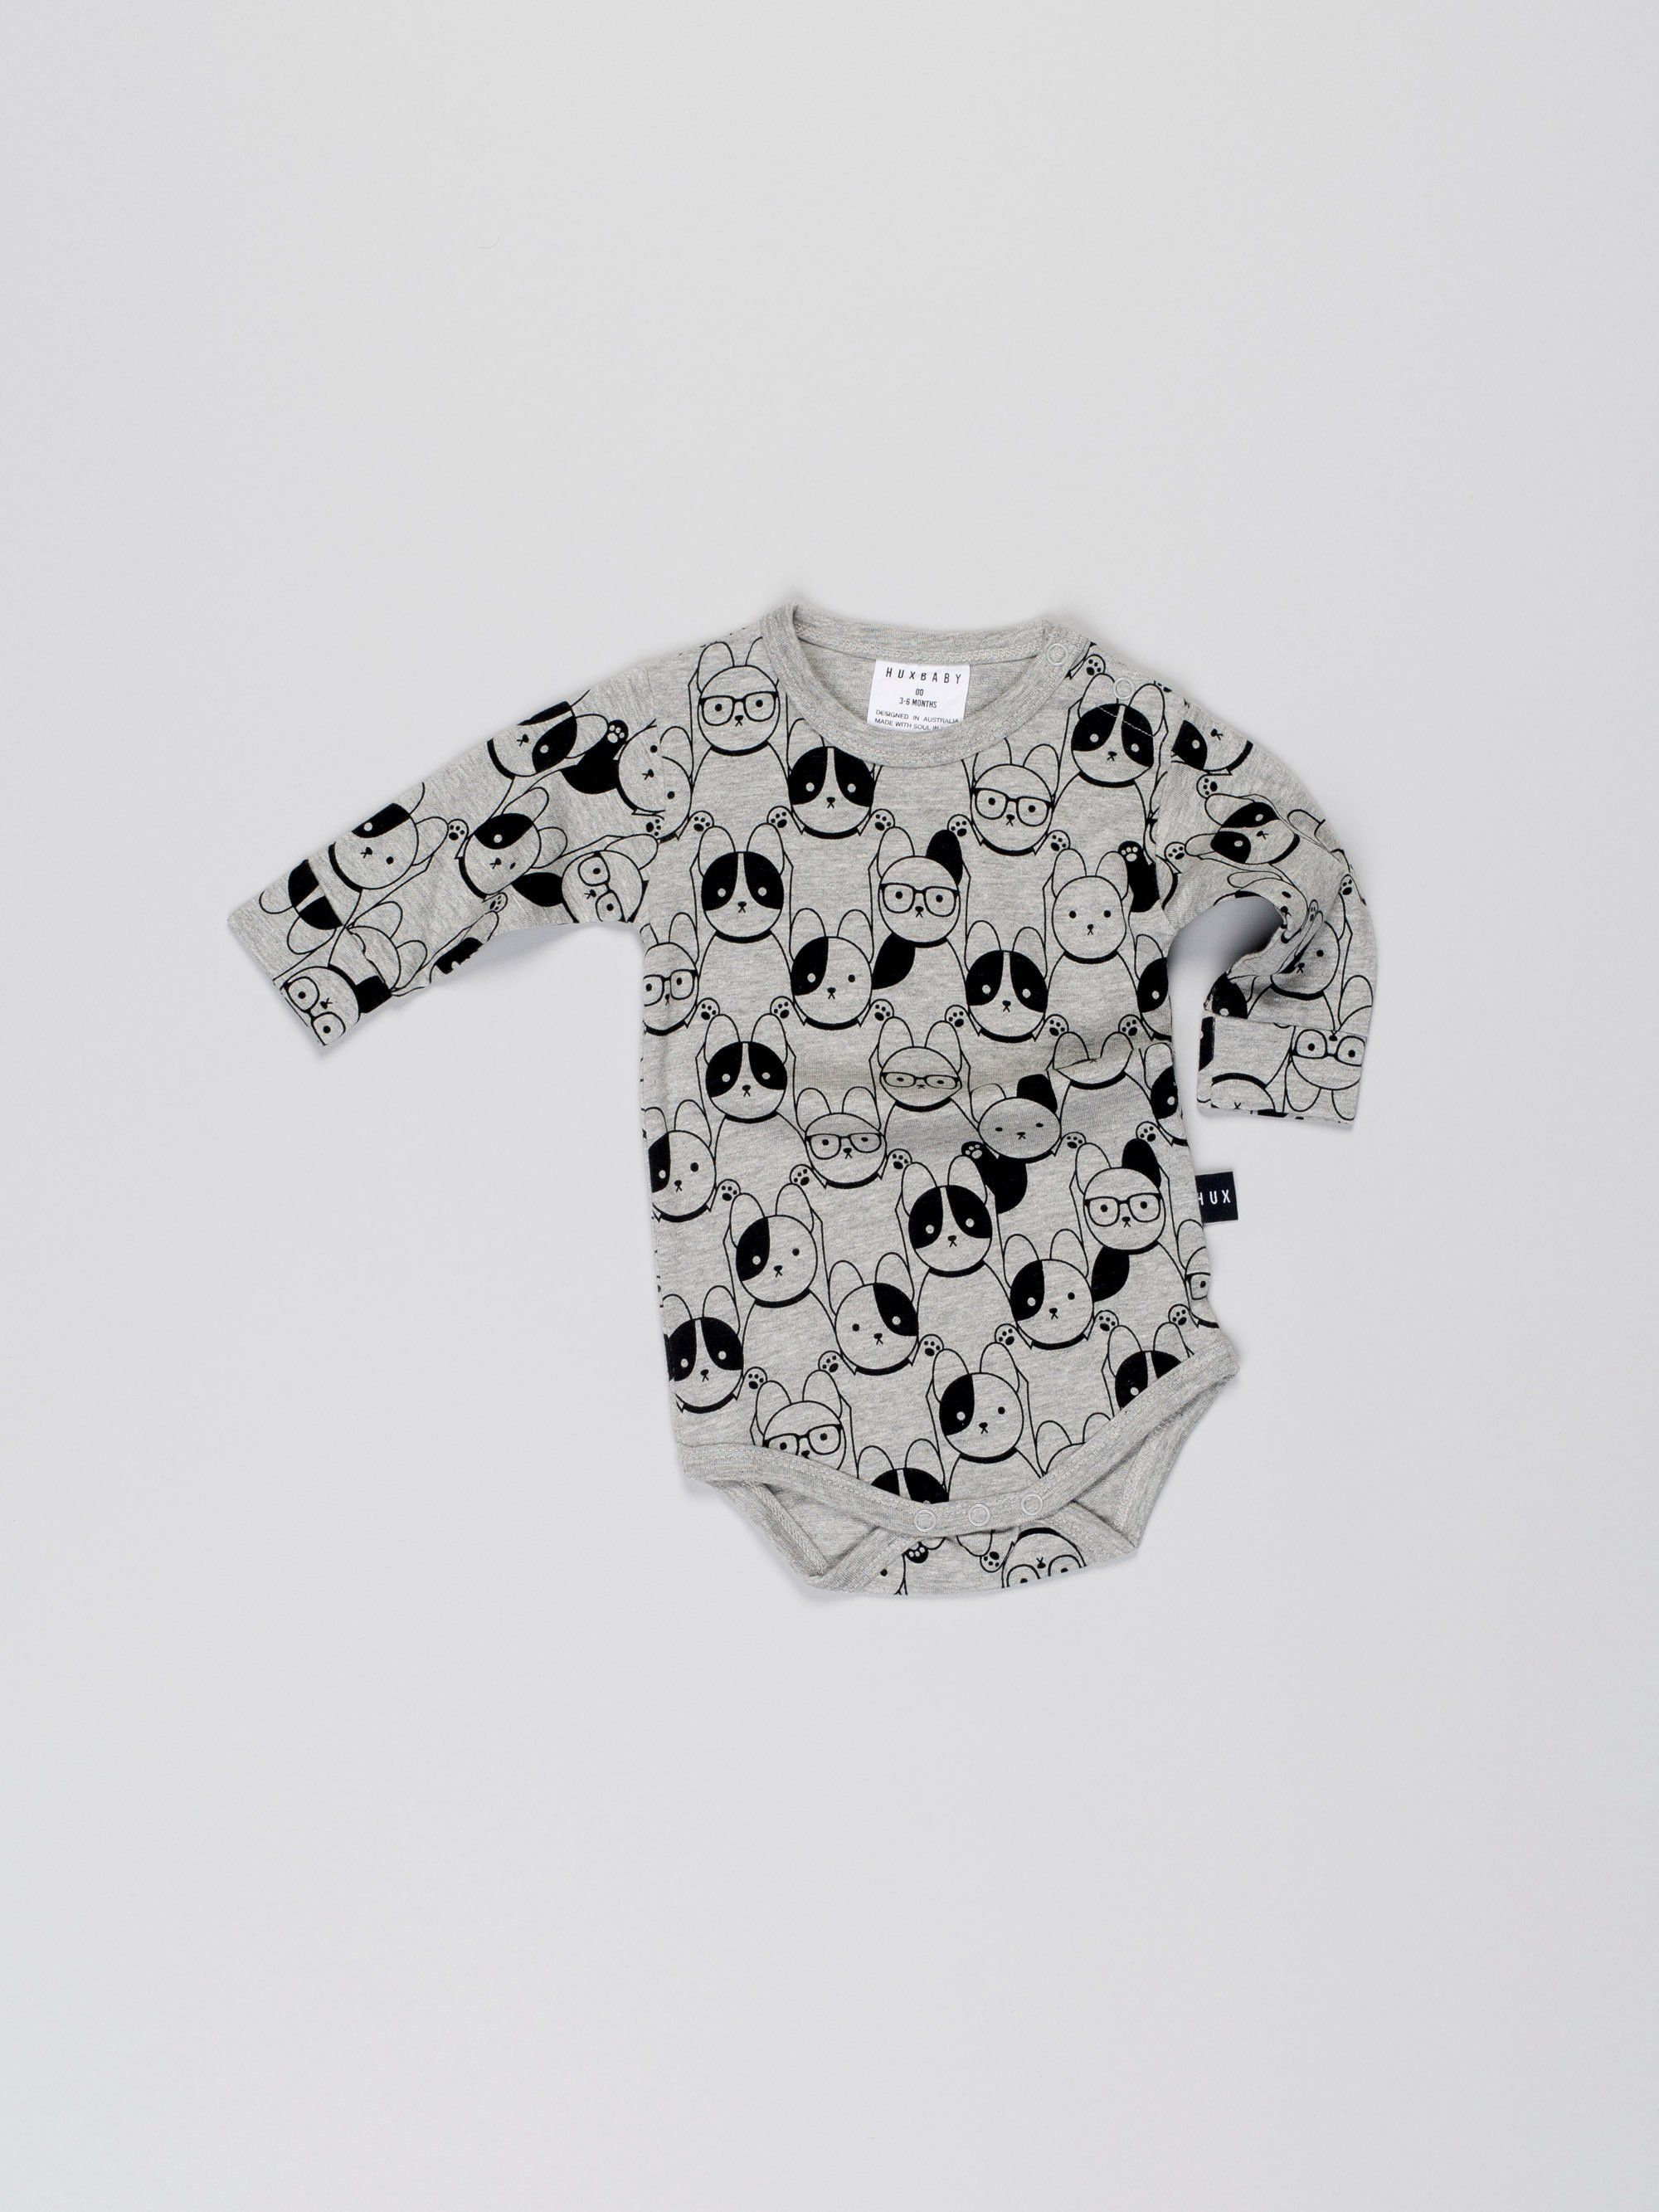 German Shepherd Dog Heart Printed Newborn Toddler Baby Long-Sleeved Bodysuit Outfits Clothes